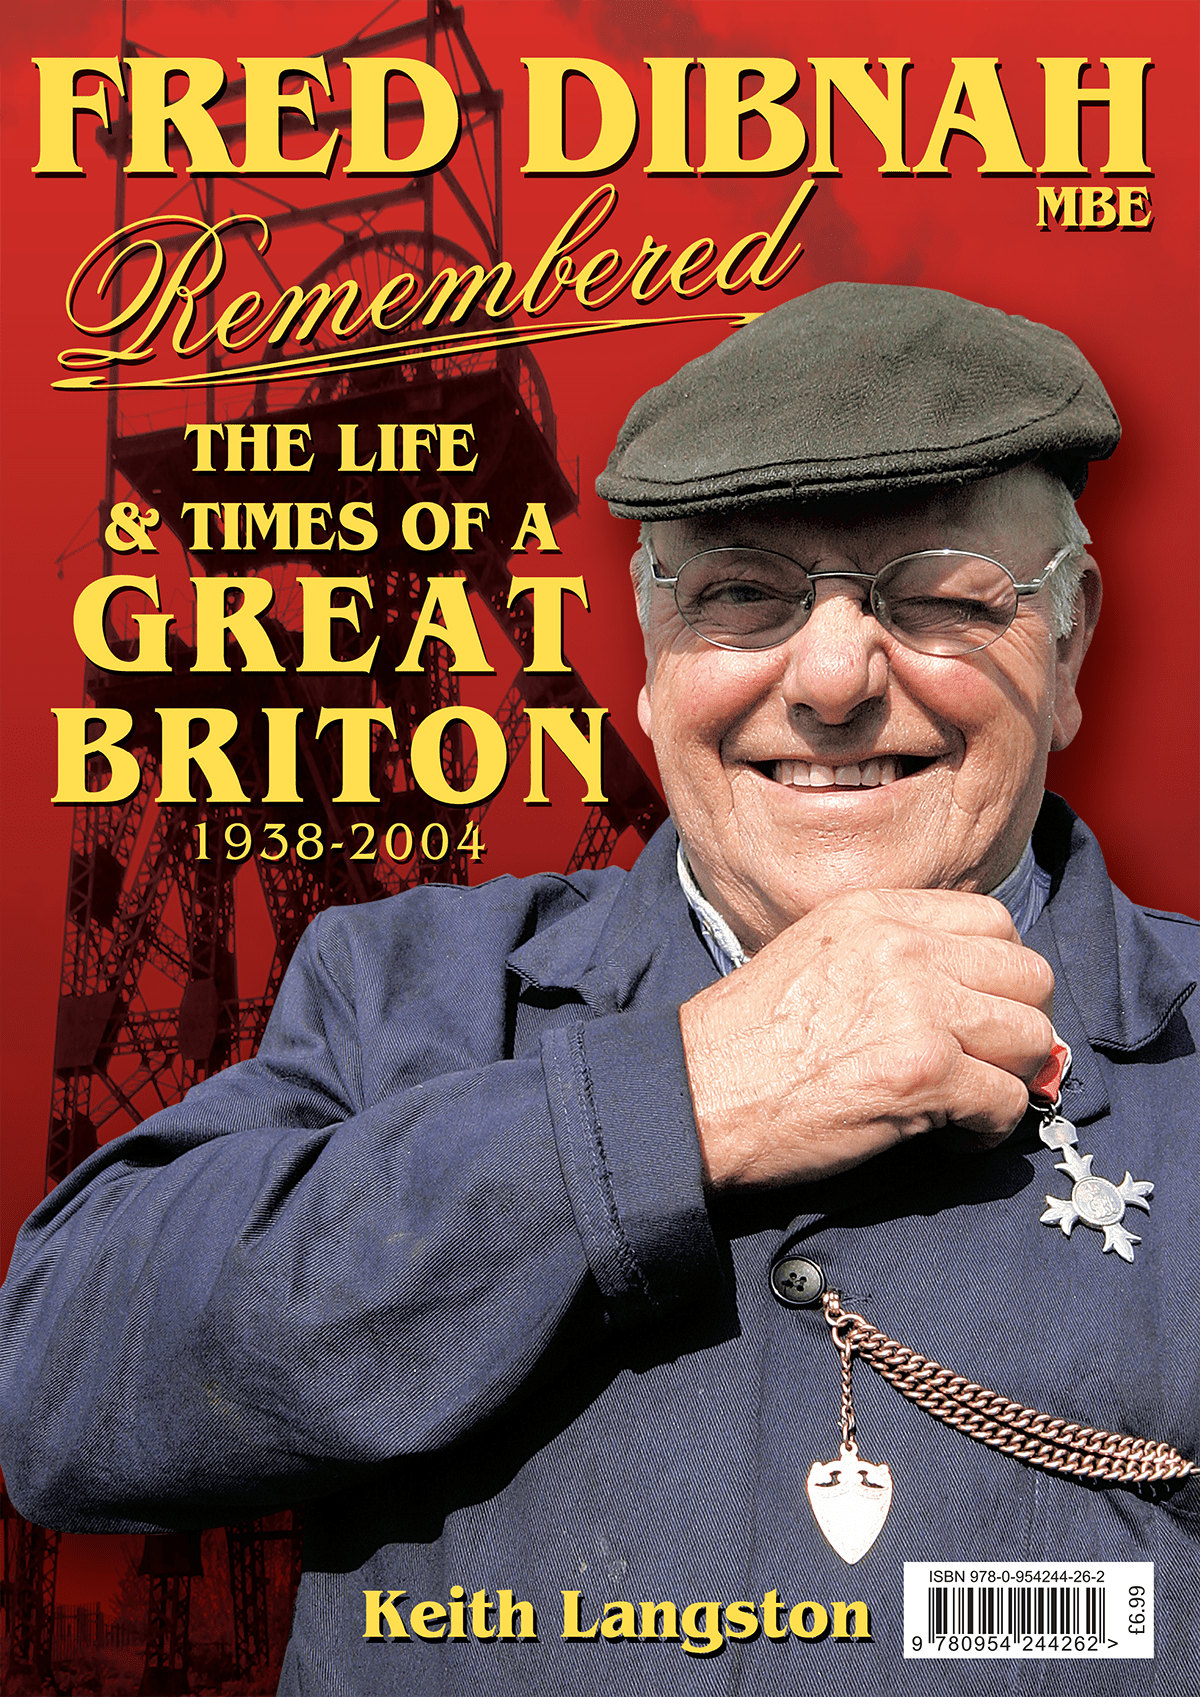 Fred Dibnah MBE Remembered